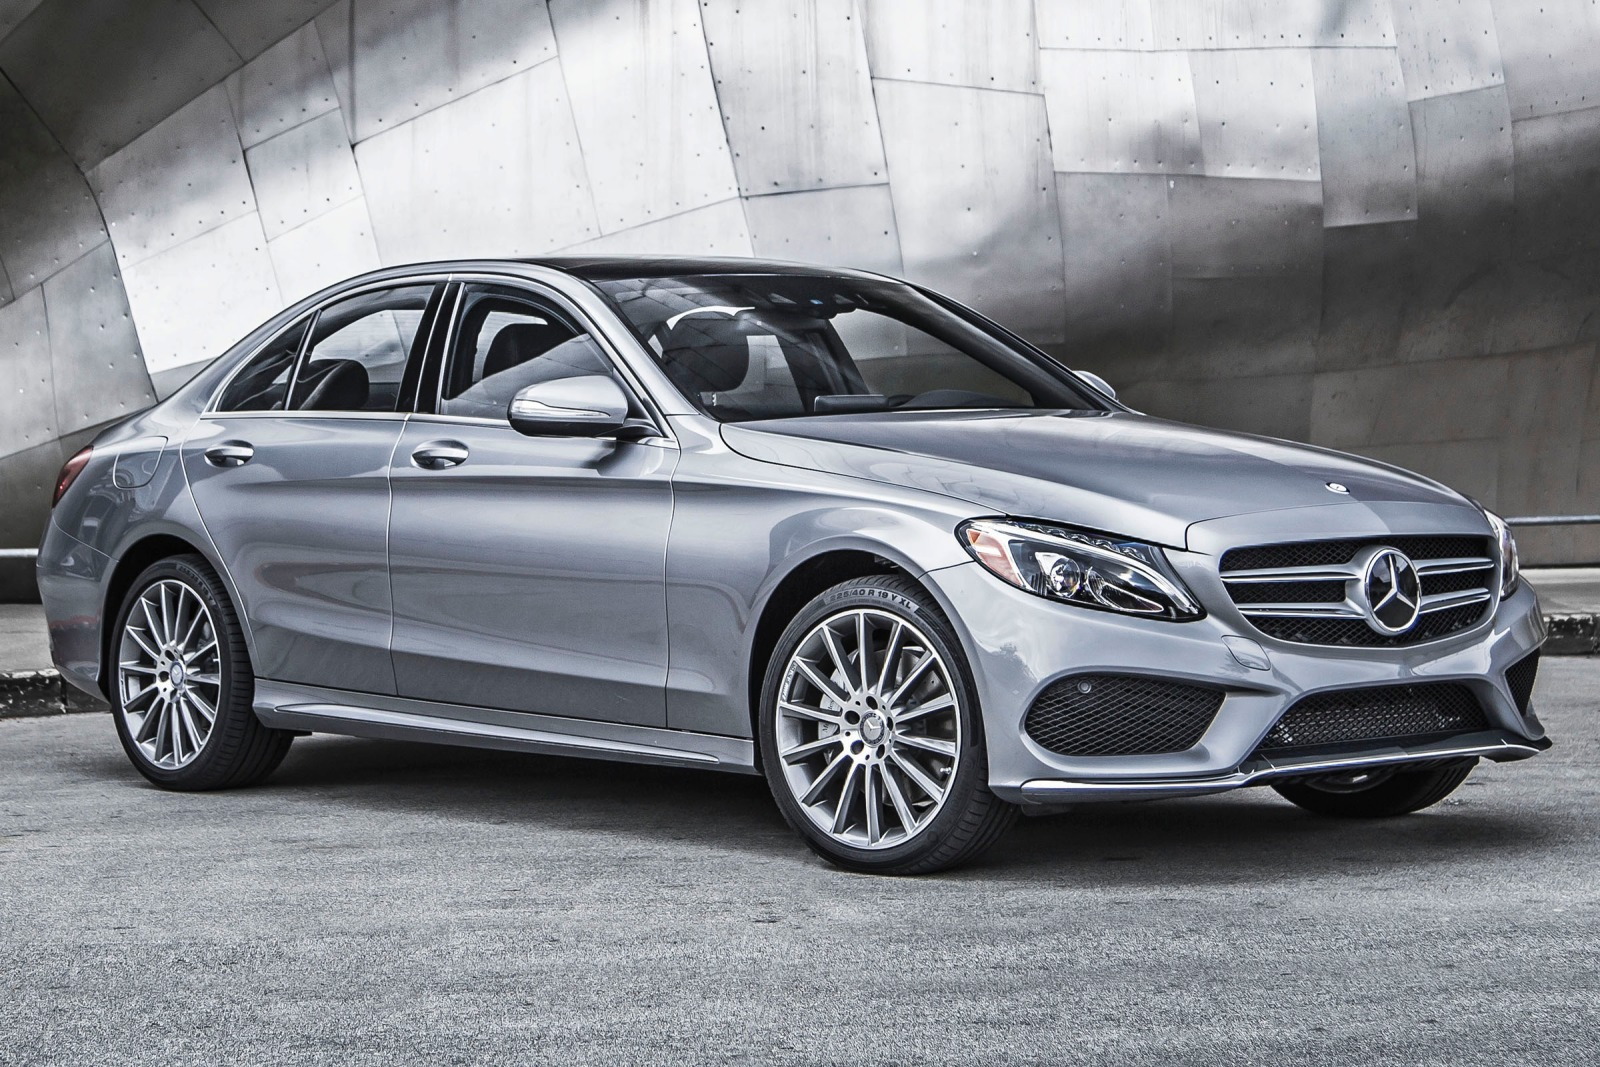 malaysia reviews my line price benz amg class carbase specs prices mercedes tronic in c